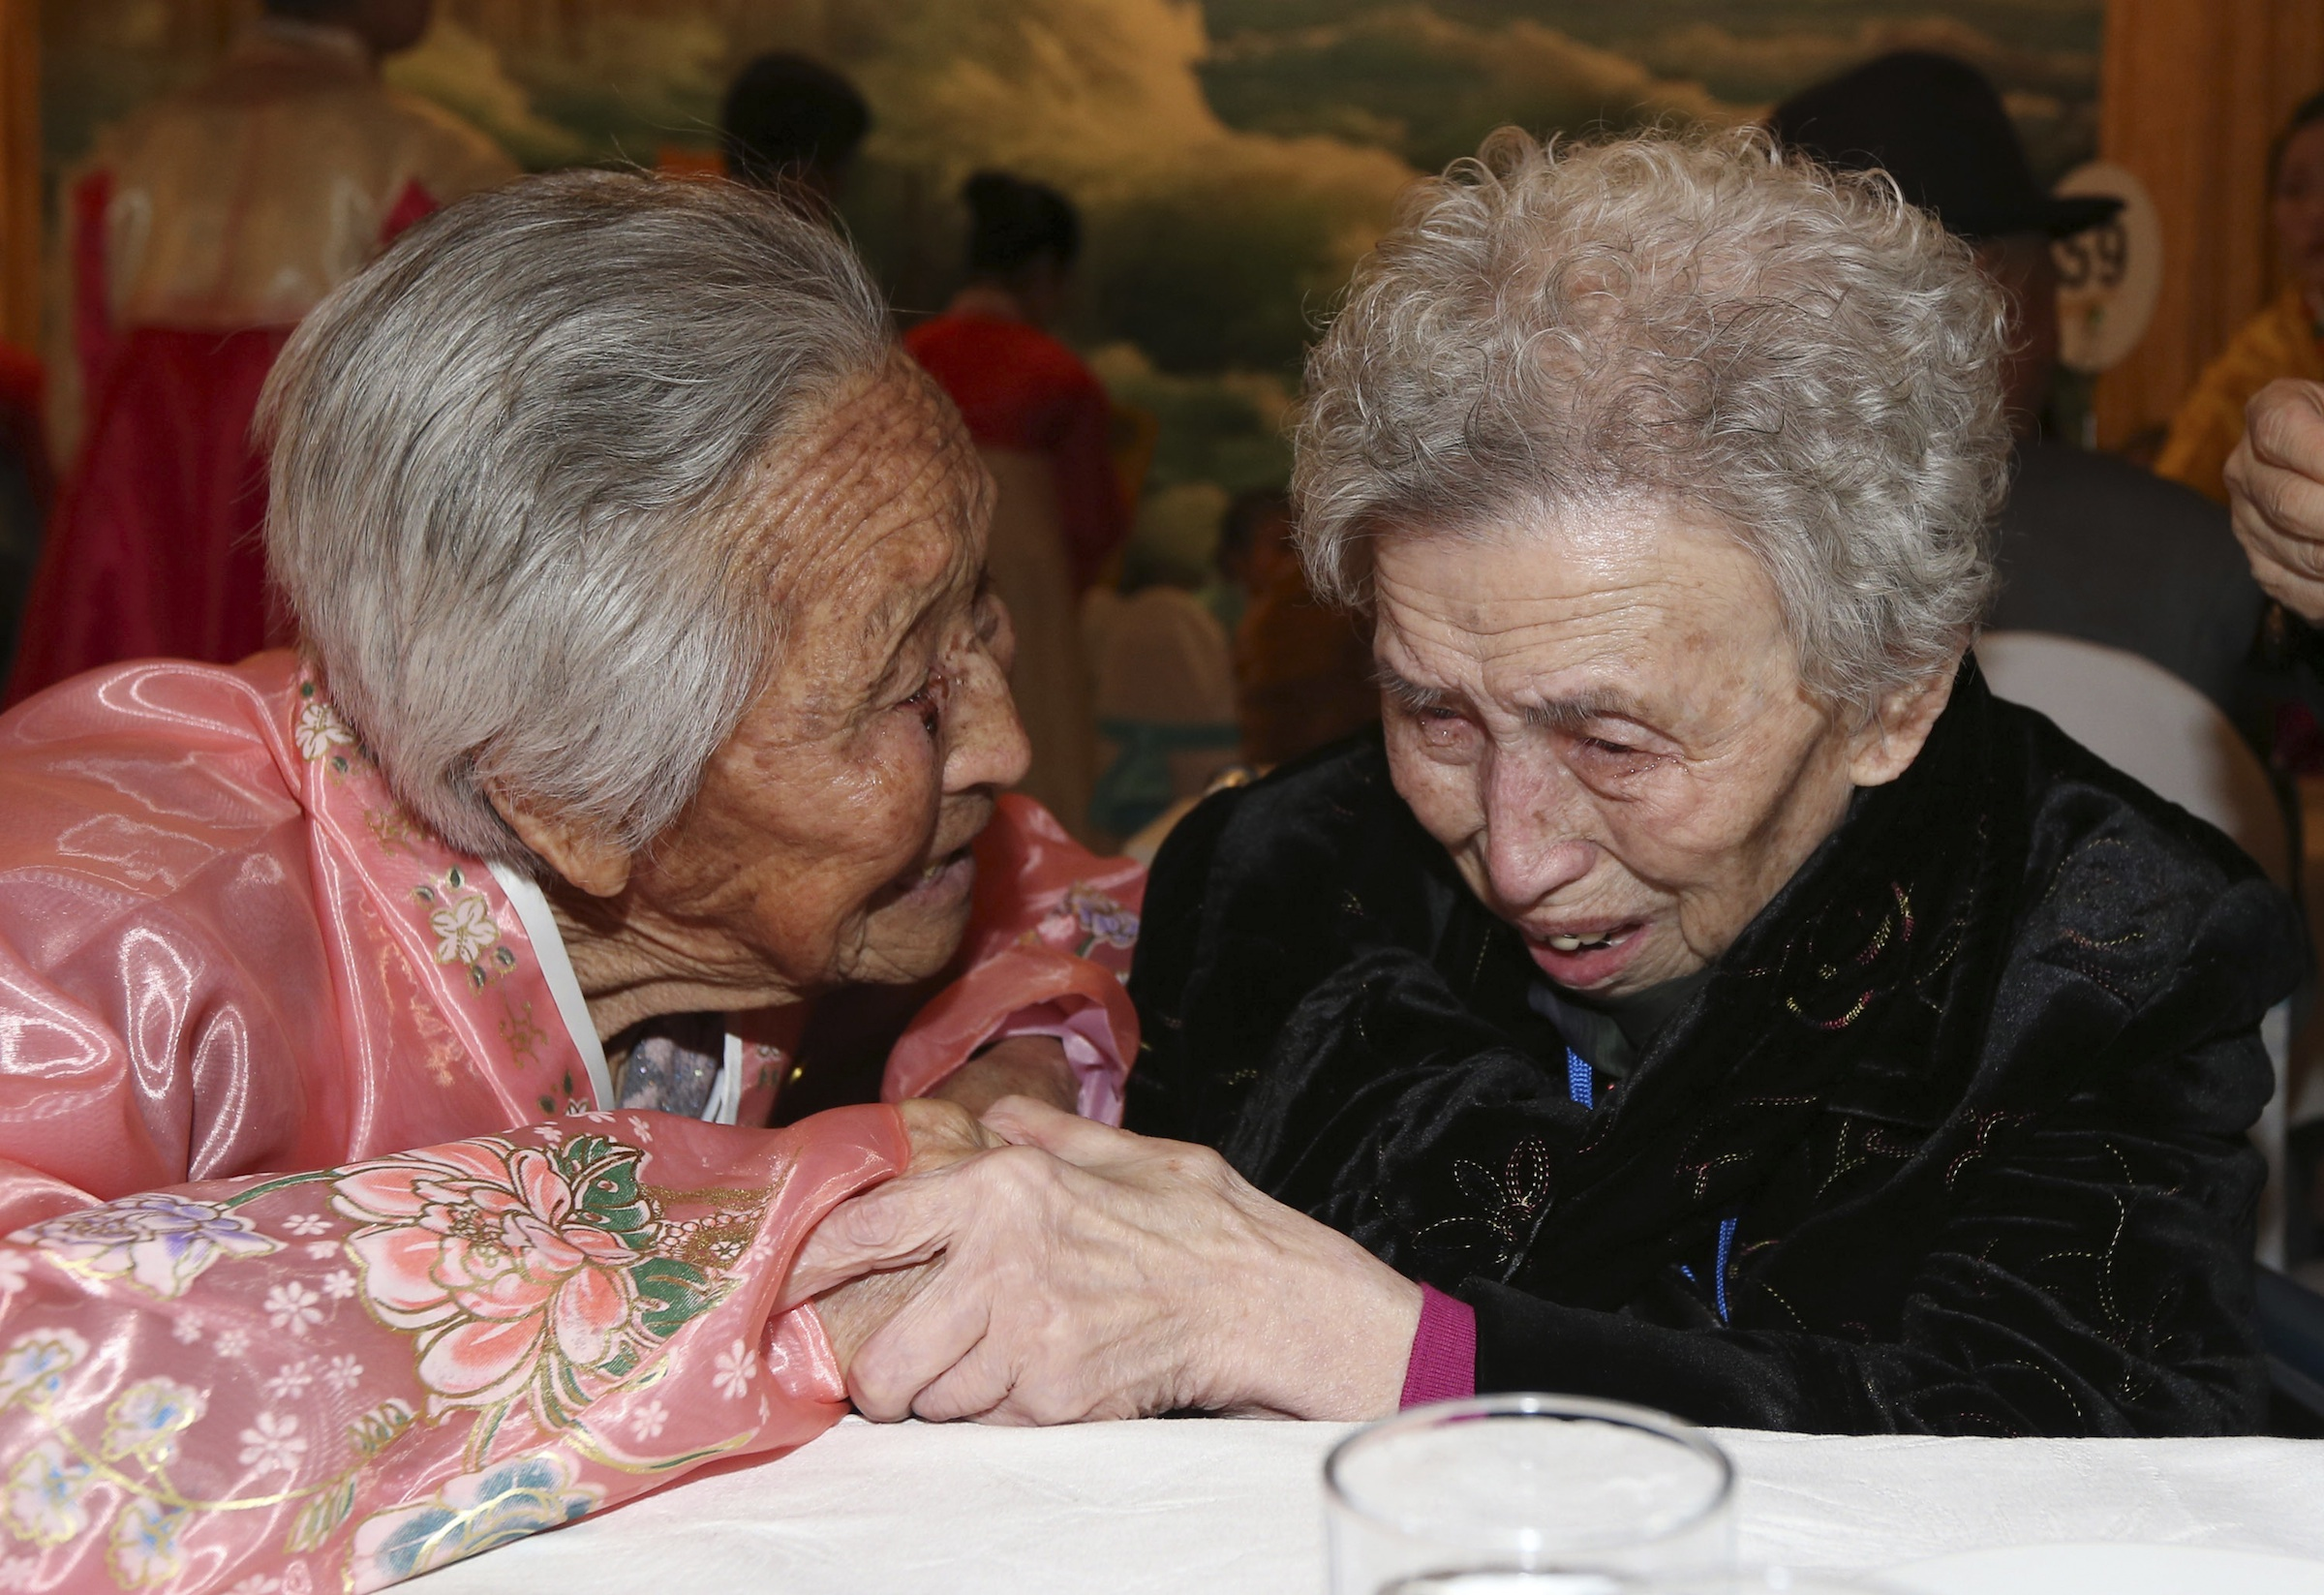 South Korean Lee Young-shil, 87, right, meets with her North Korean sister Lee Jong Shil, 84, during the Separated Family Reunion Meeting at Diamond Mountain resort in North Korea, Thursday, Feb. 20, 2014. (AP Photo/Yonhap, Lee Ji-eun) Korea Out